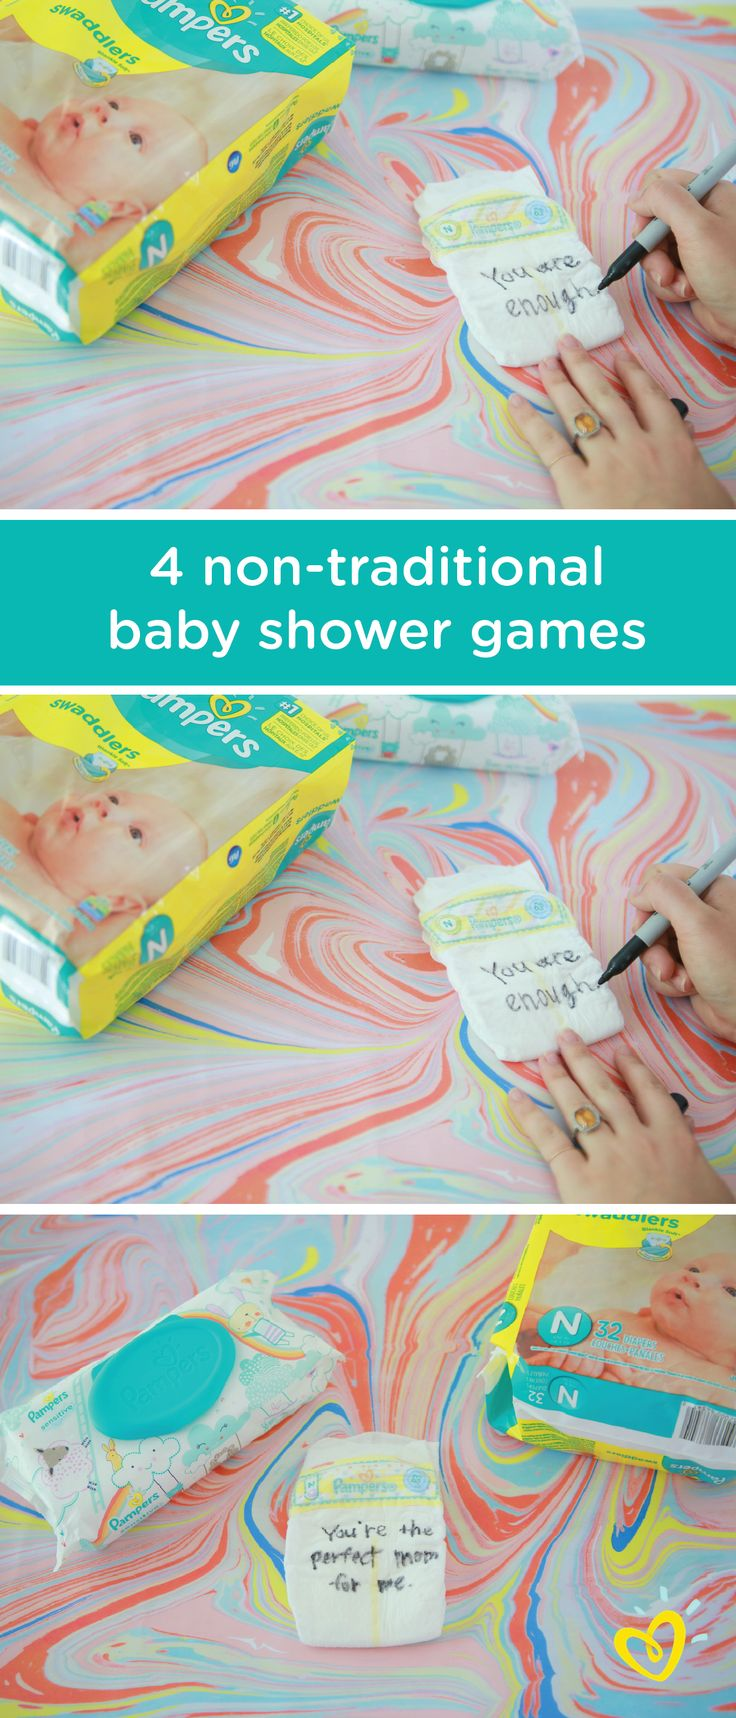 You can't help but have fun with these non-traditional baby shower games. Try having friends and family write funny or encouraging notes on Pampers Swaddlers diapers. Then, hang up all of the diapers to create a silly photo backdrop that guests can pose in front of. Click here to learn more.